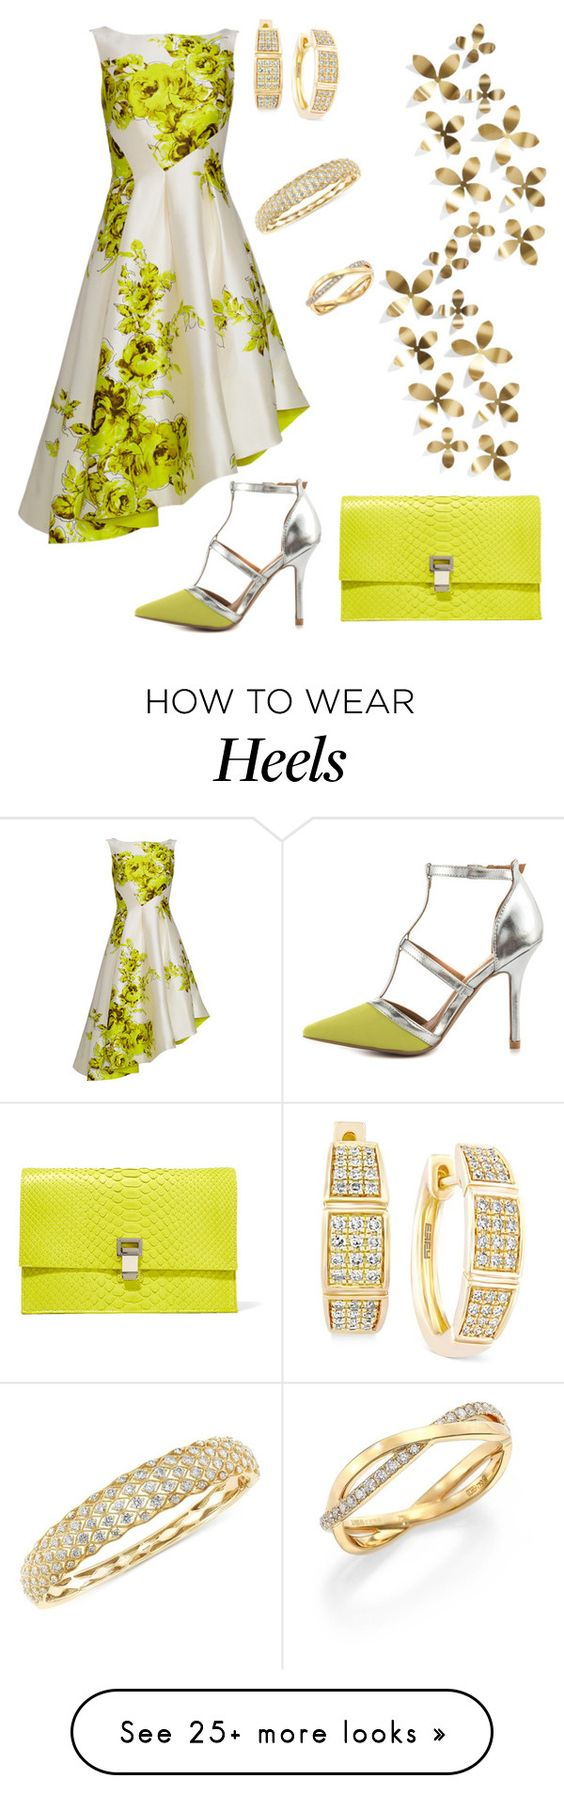 """""""Lime."""" by schenonek on Polyvore featuring Lela Rose, Qupid, Proenza Schouler, Effy Jewelry, De Beers, Umbra, women's clothing, women's fashion, women and female"""